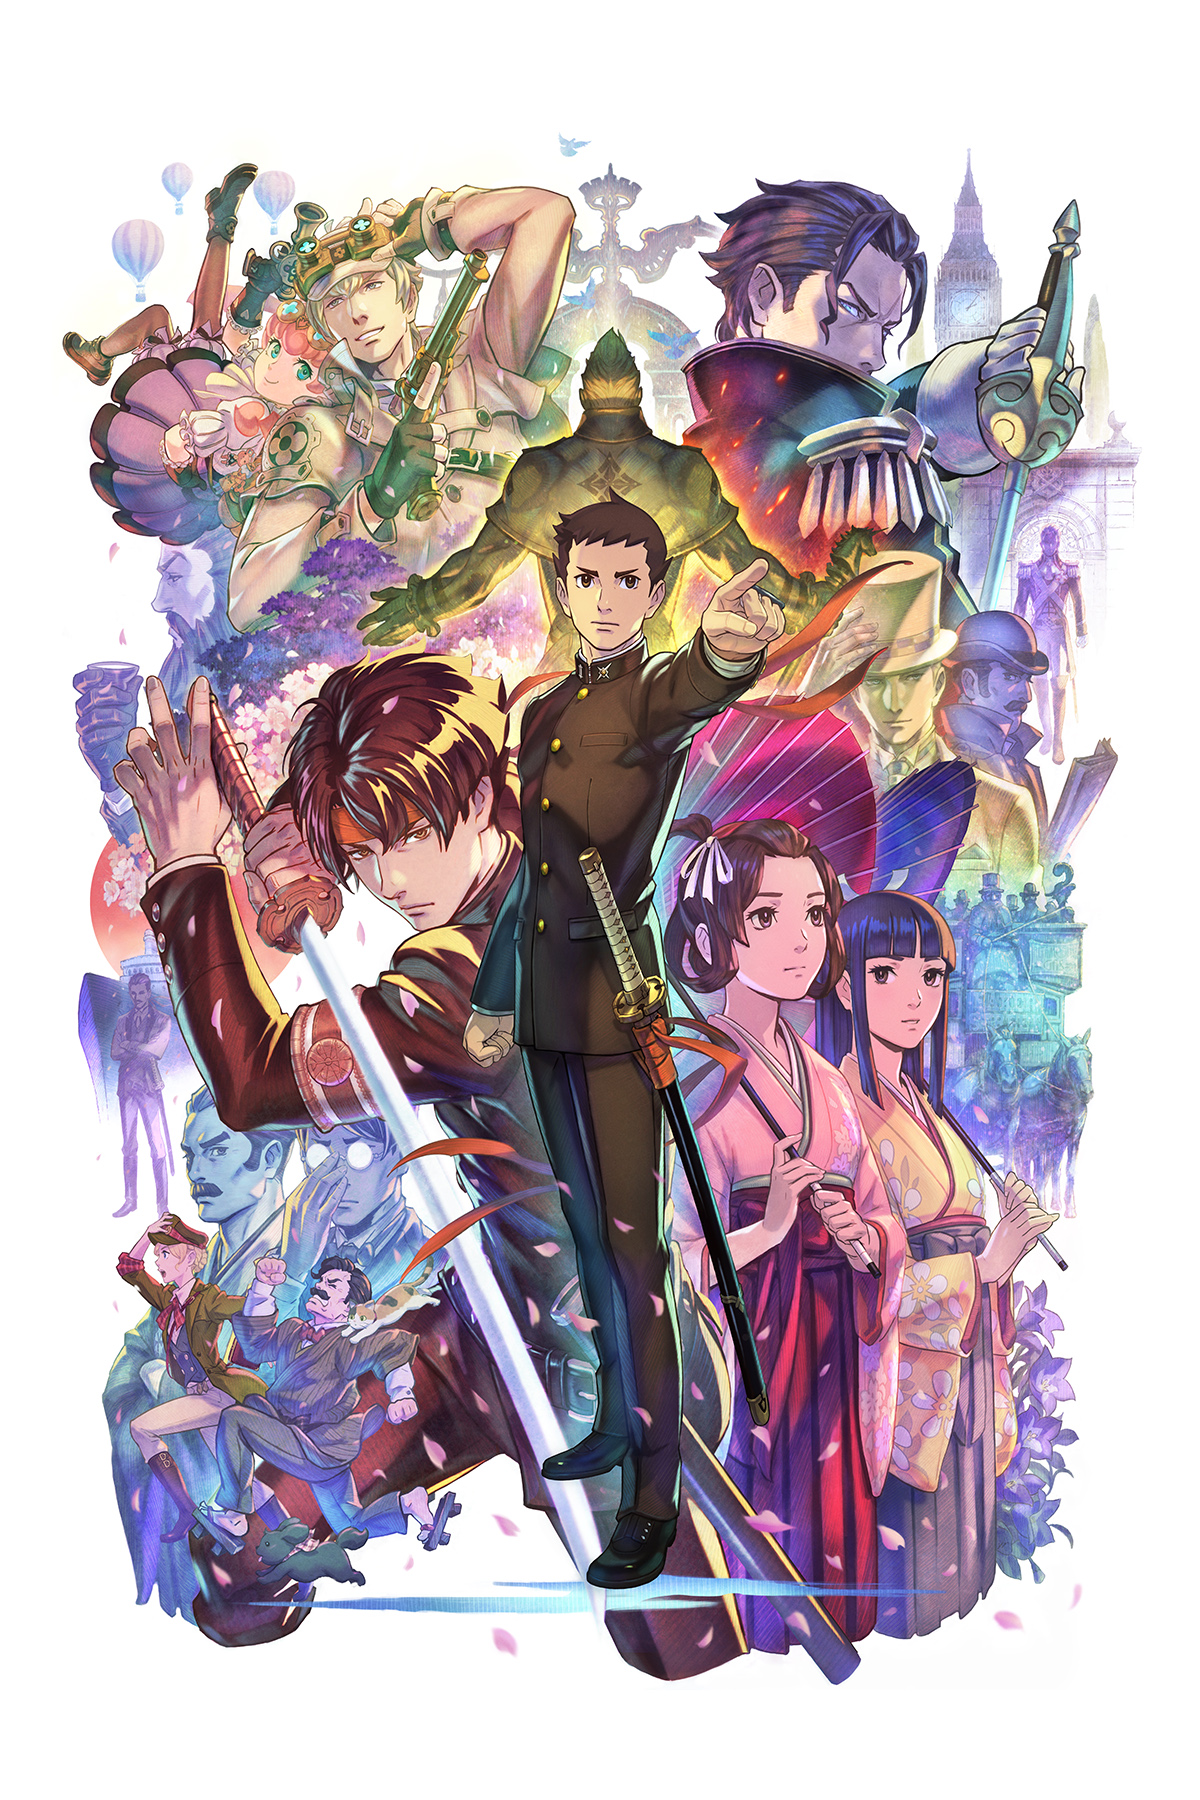 Finally, Capcom announces The Great Ace Attorney Chronicles for Western markets